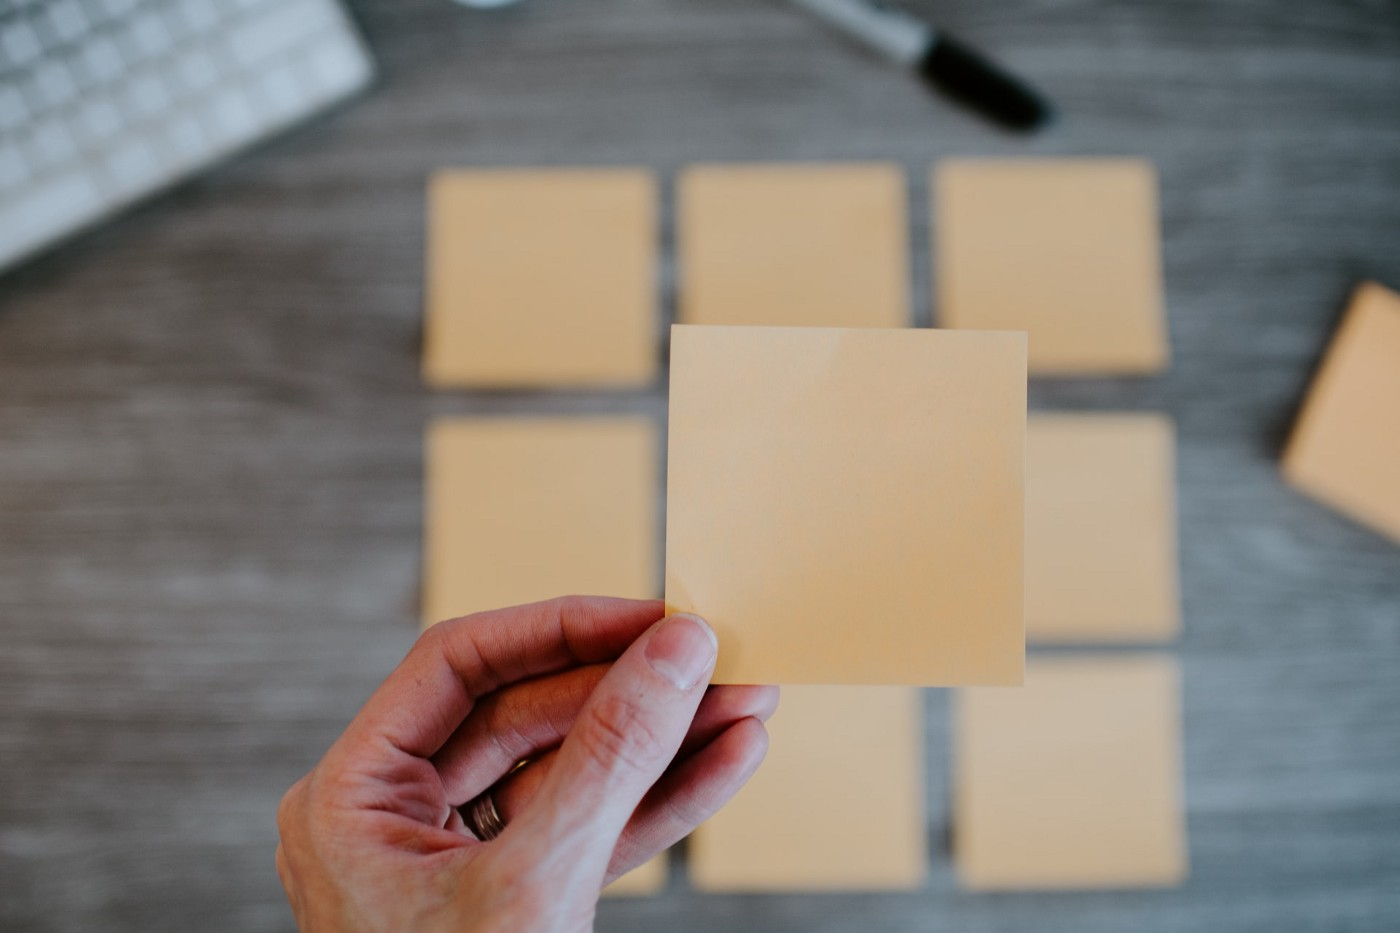 Hand holding a blank post-it